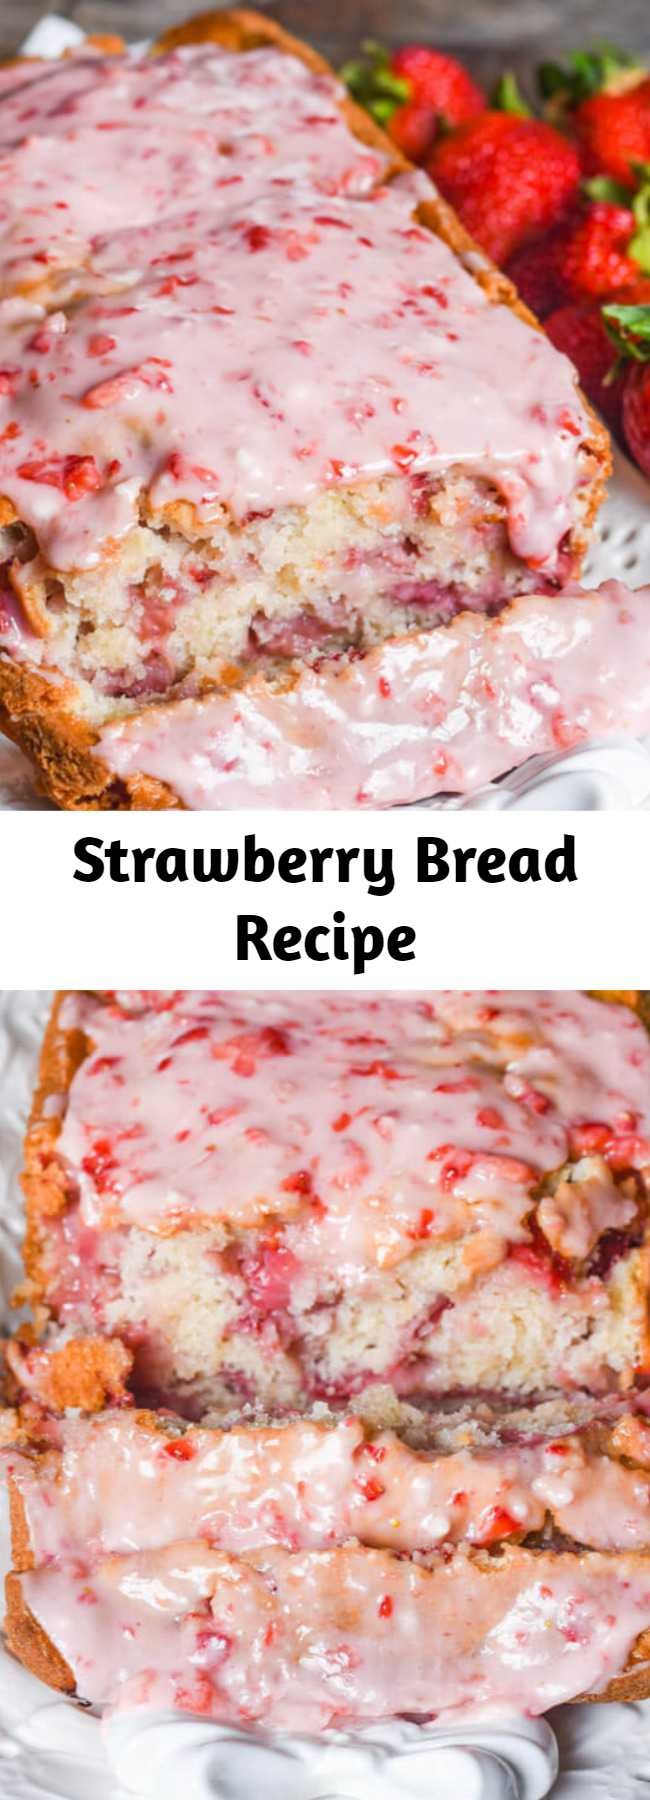 Strawberry Bread Recipe - Try this fresh strawberry bread with melt-in-your-mouth strawberry glaze. This quick bread recipe comes together in just 10 minutes. If you love fruit breads, you'll also love our cherry bread!